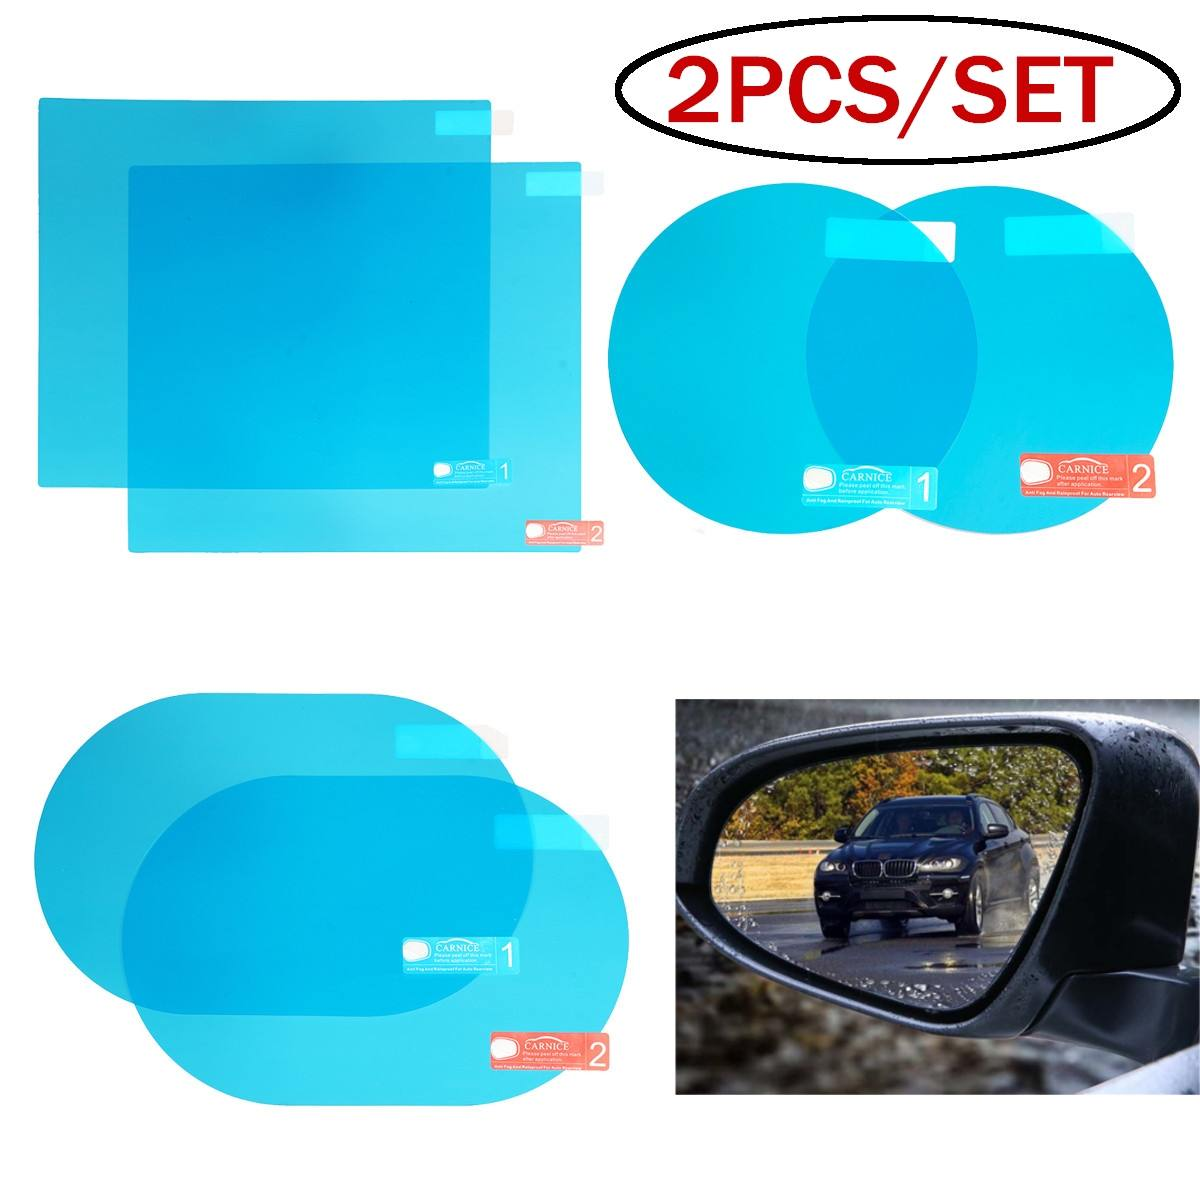 Protective-Film-Accessories Auto-Rearview-Mirror Window Anti-Fog Rainproof Car 2pcs/Set